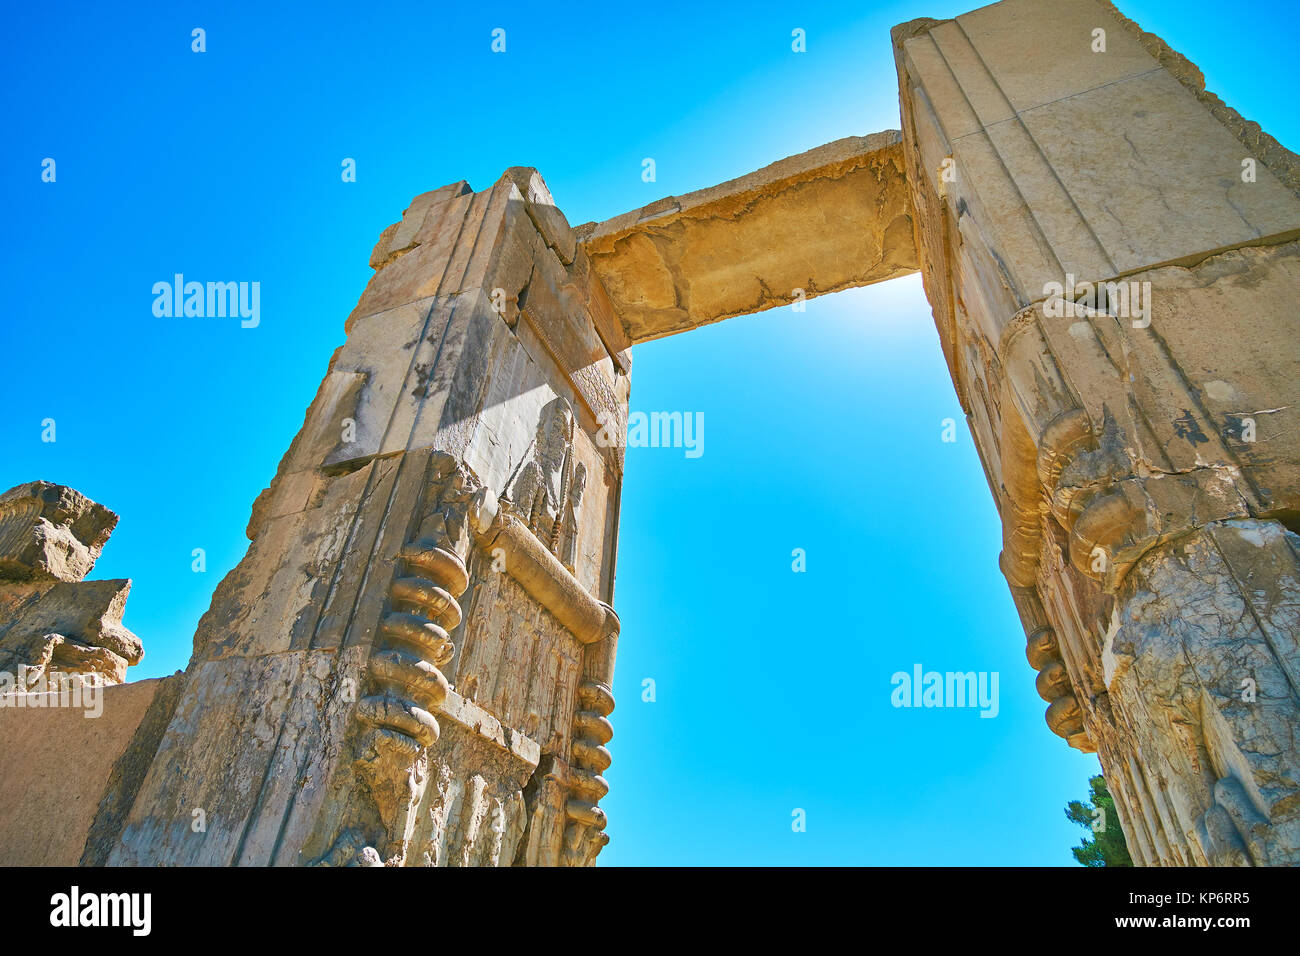 Walk through the tall gate of Hundred Columns Hall in ancient Persepolis, Iran. - Stock Image